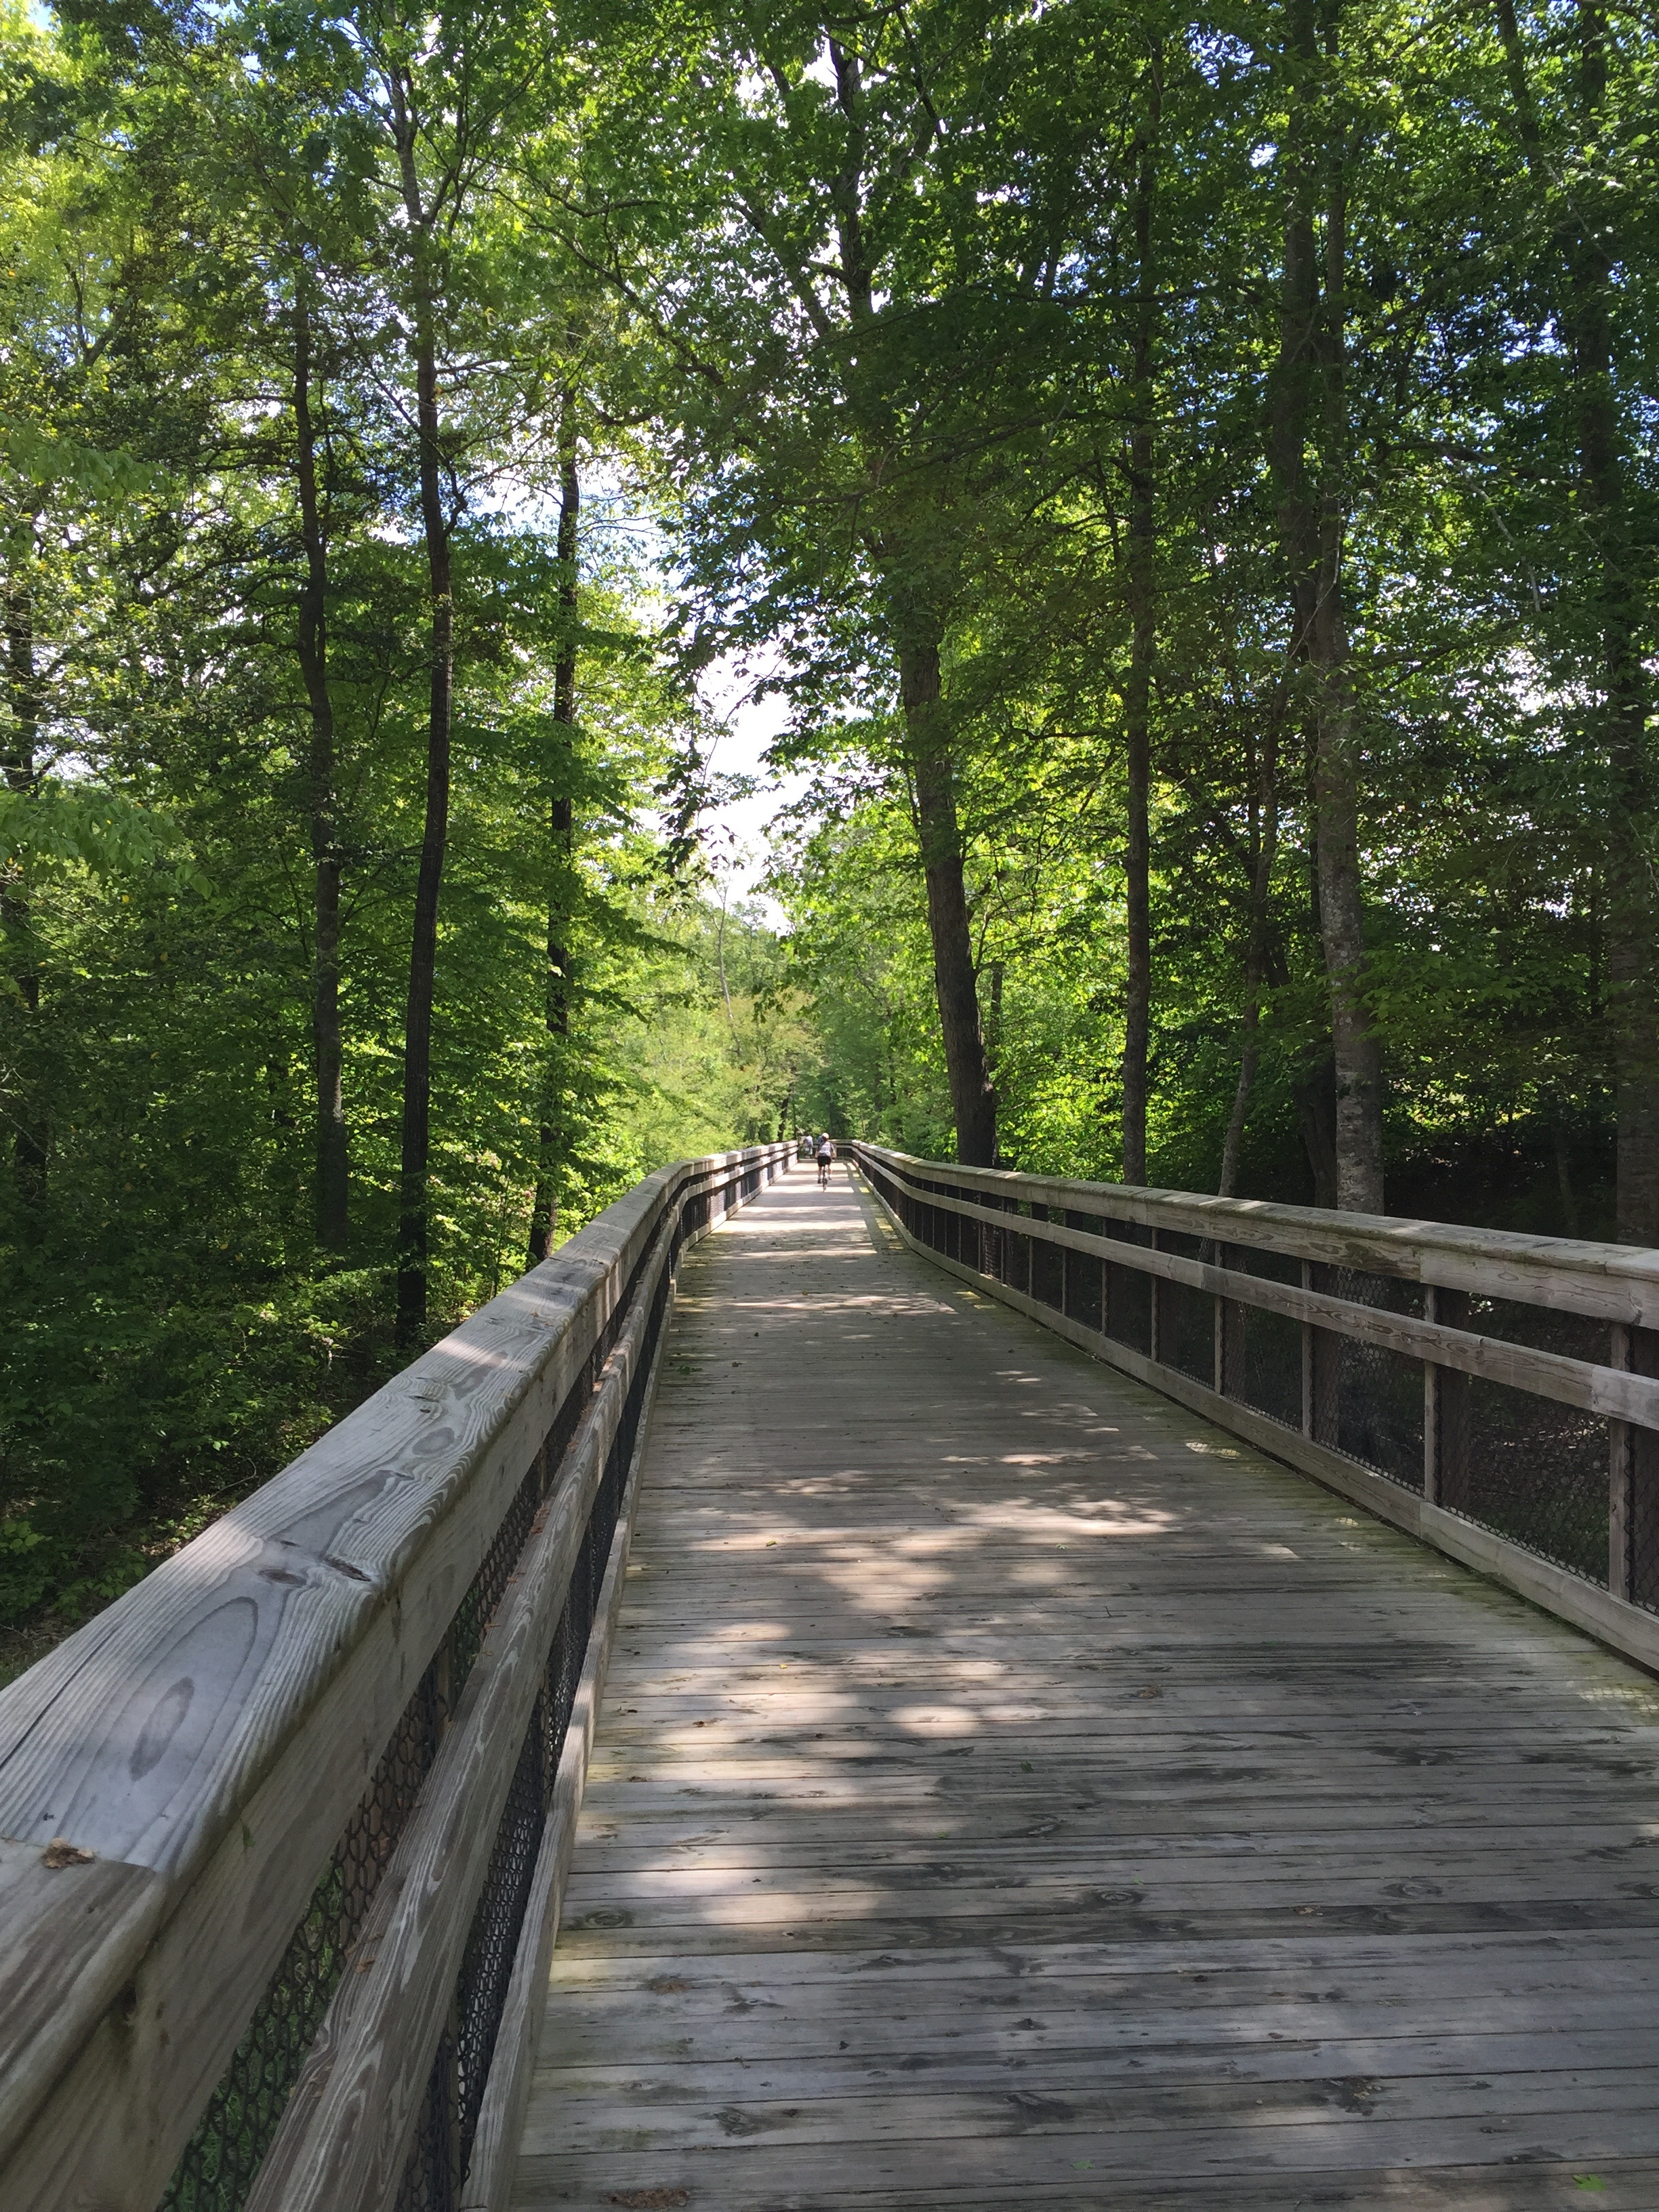 One of the boardwalks on the trail